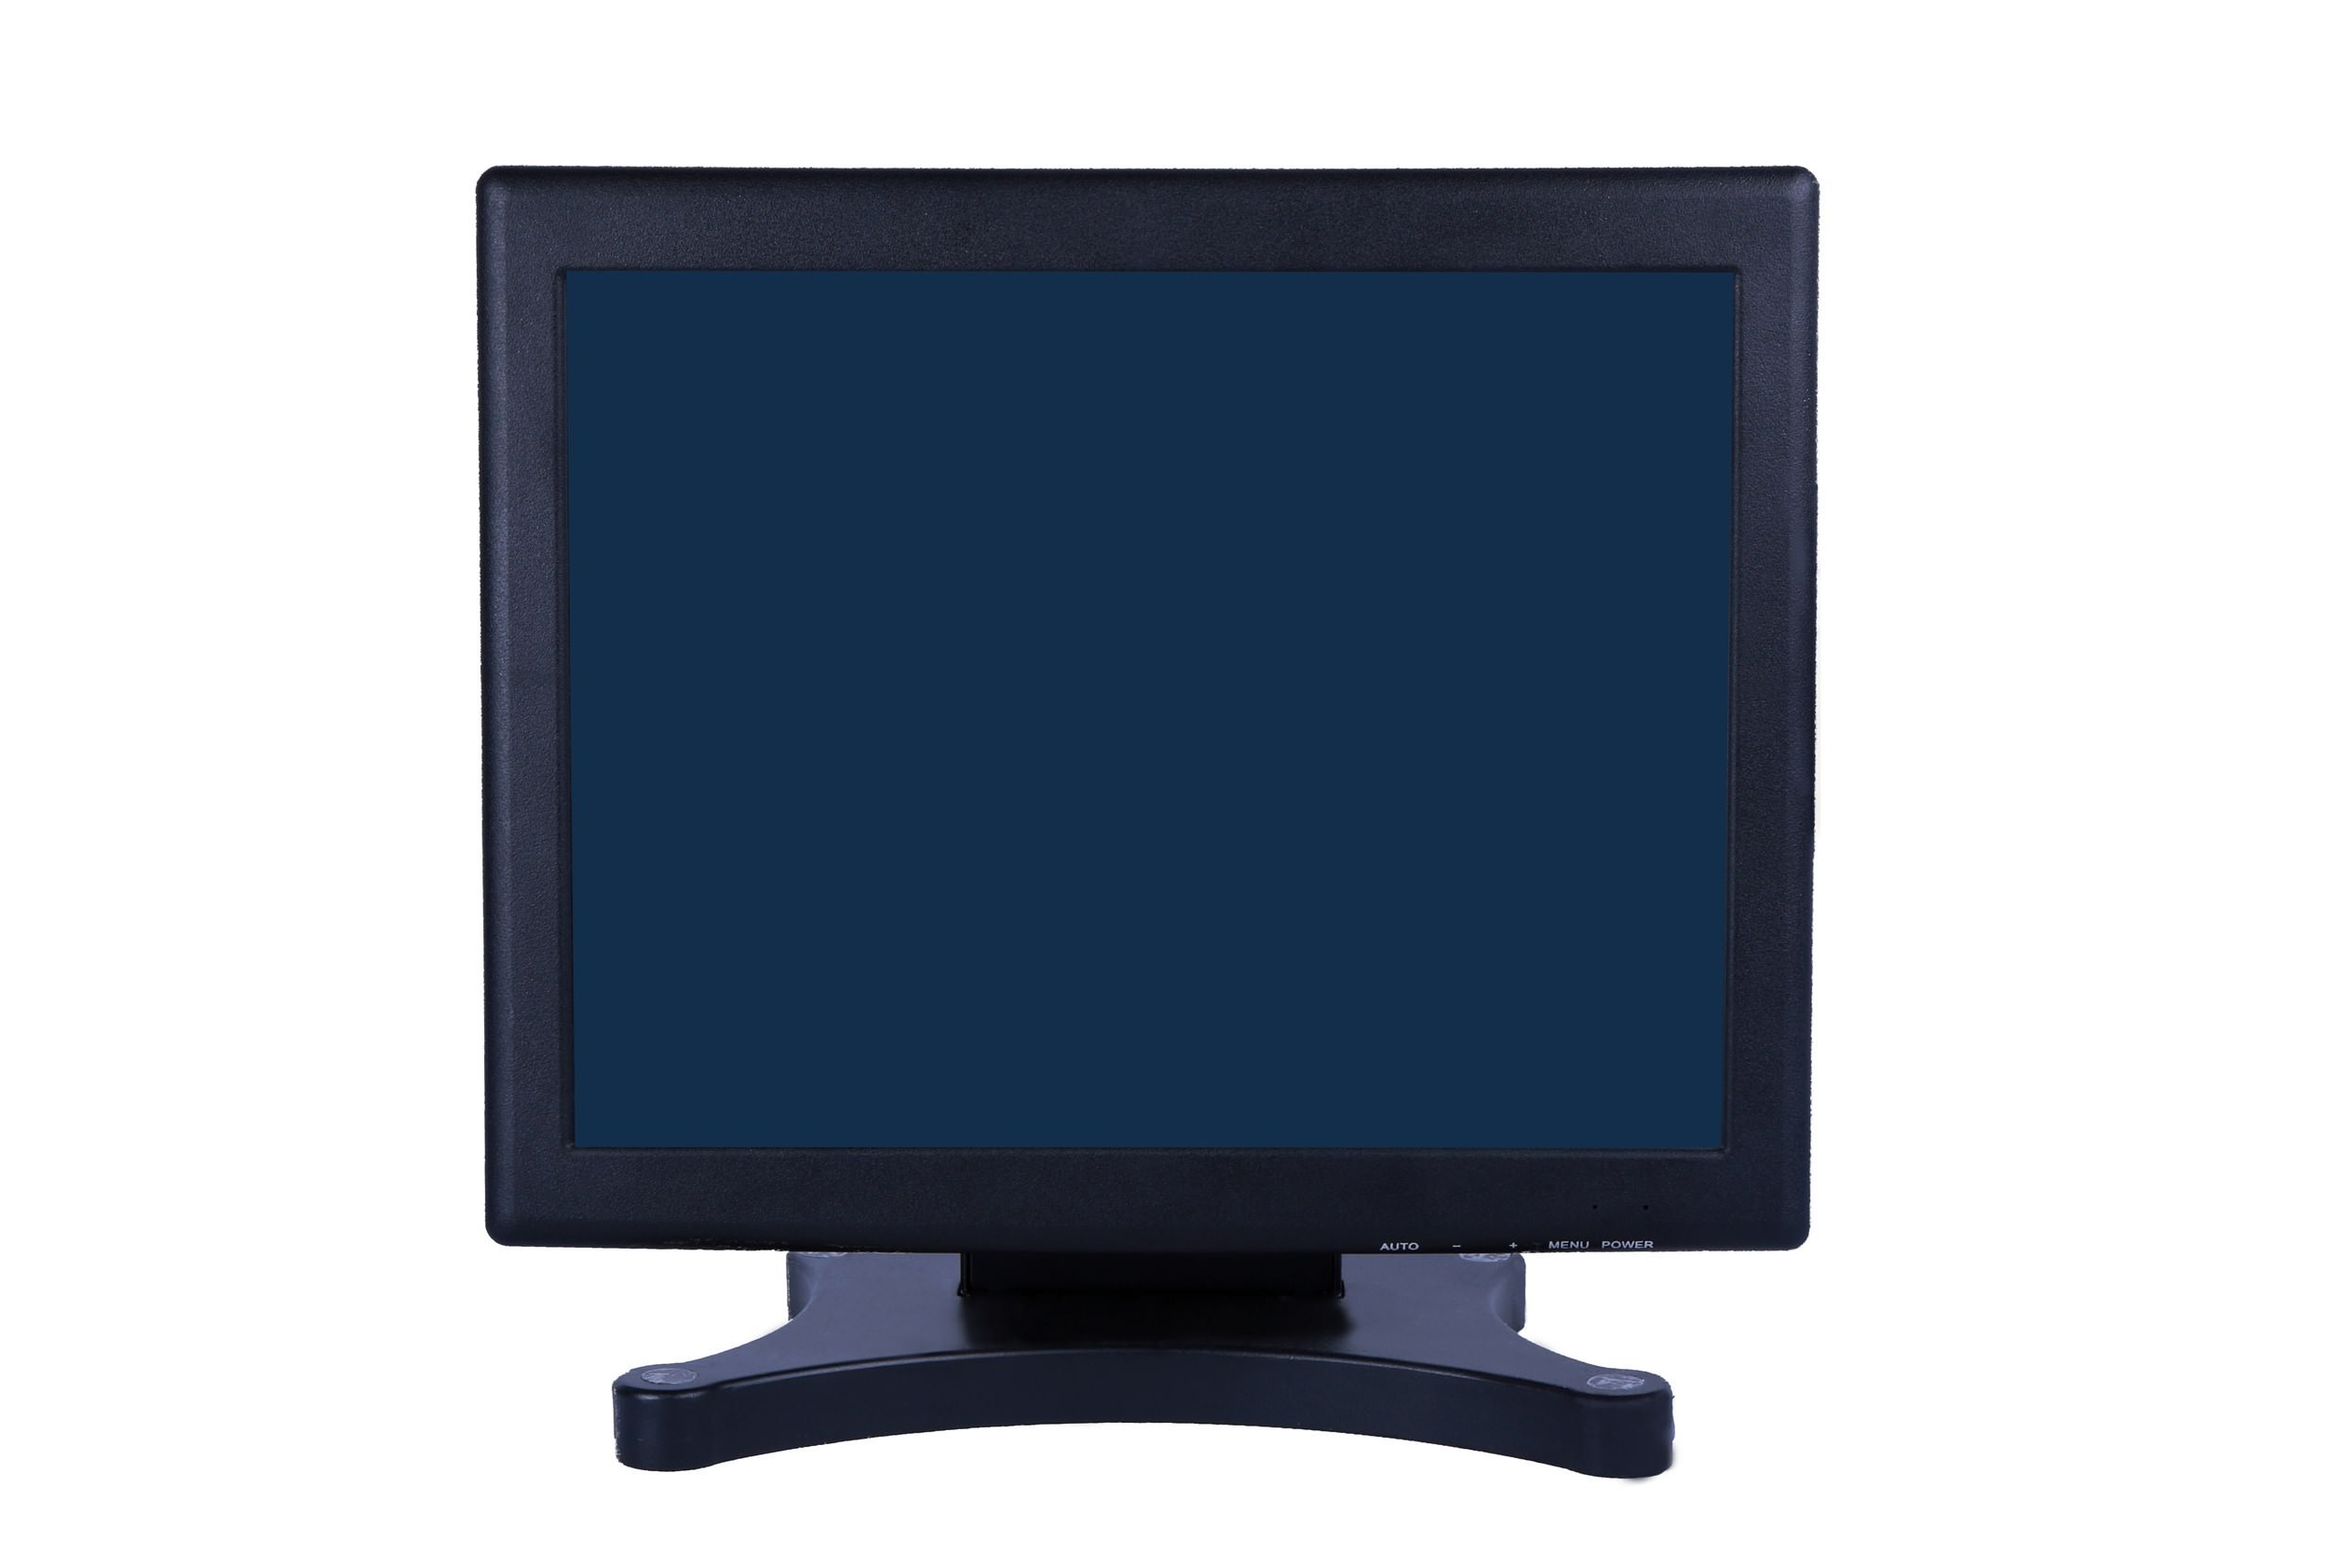 MONITOR TACTIL BLUEBEE 17 NEGRO USB TM-217